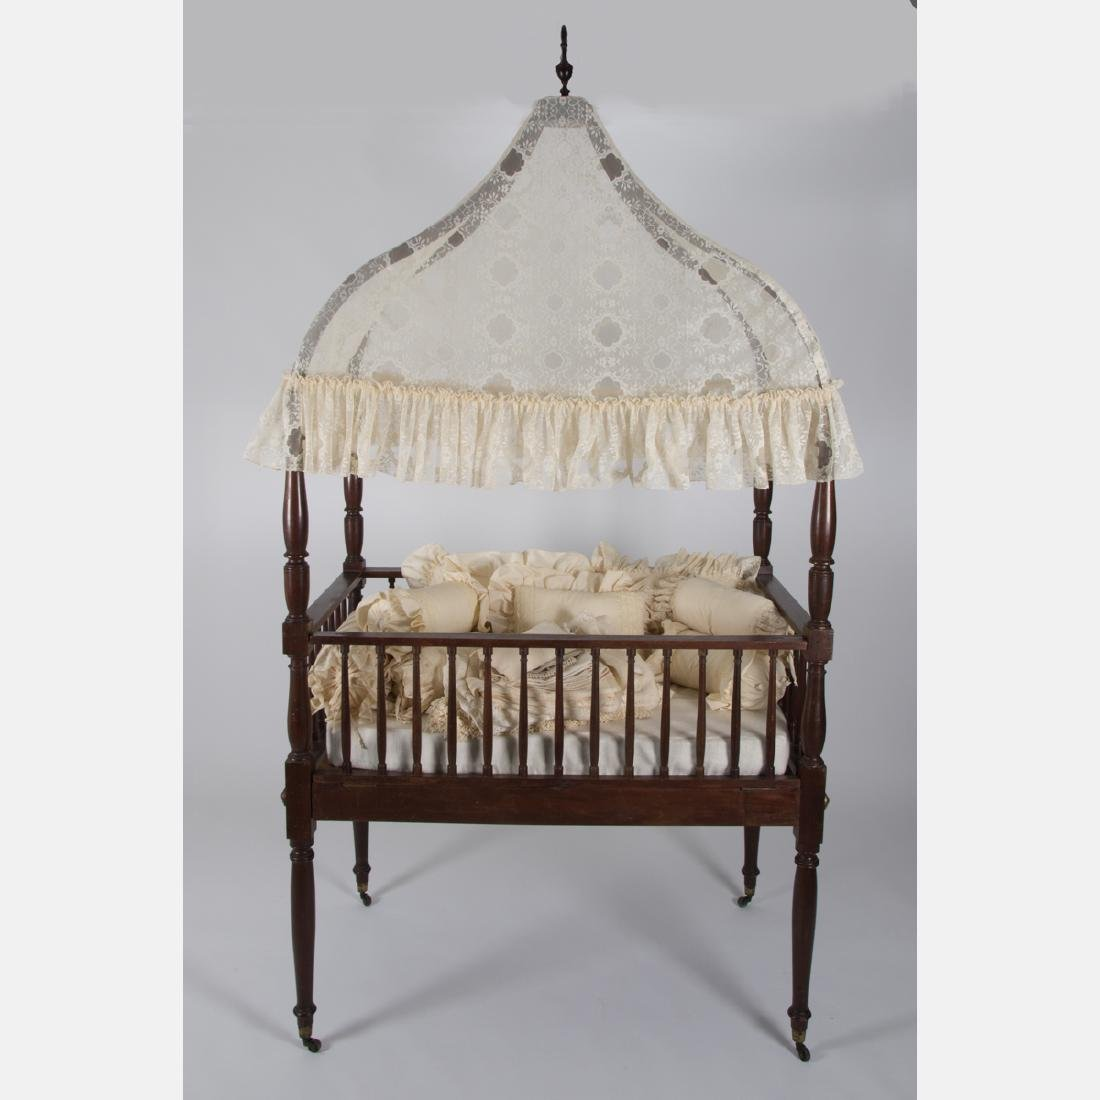 A Victorian Mahogany Doll's Cradle with Canopy, 19th